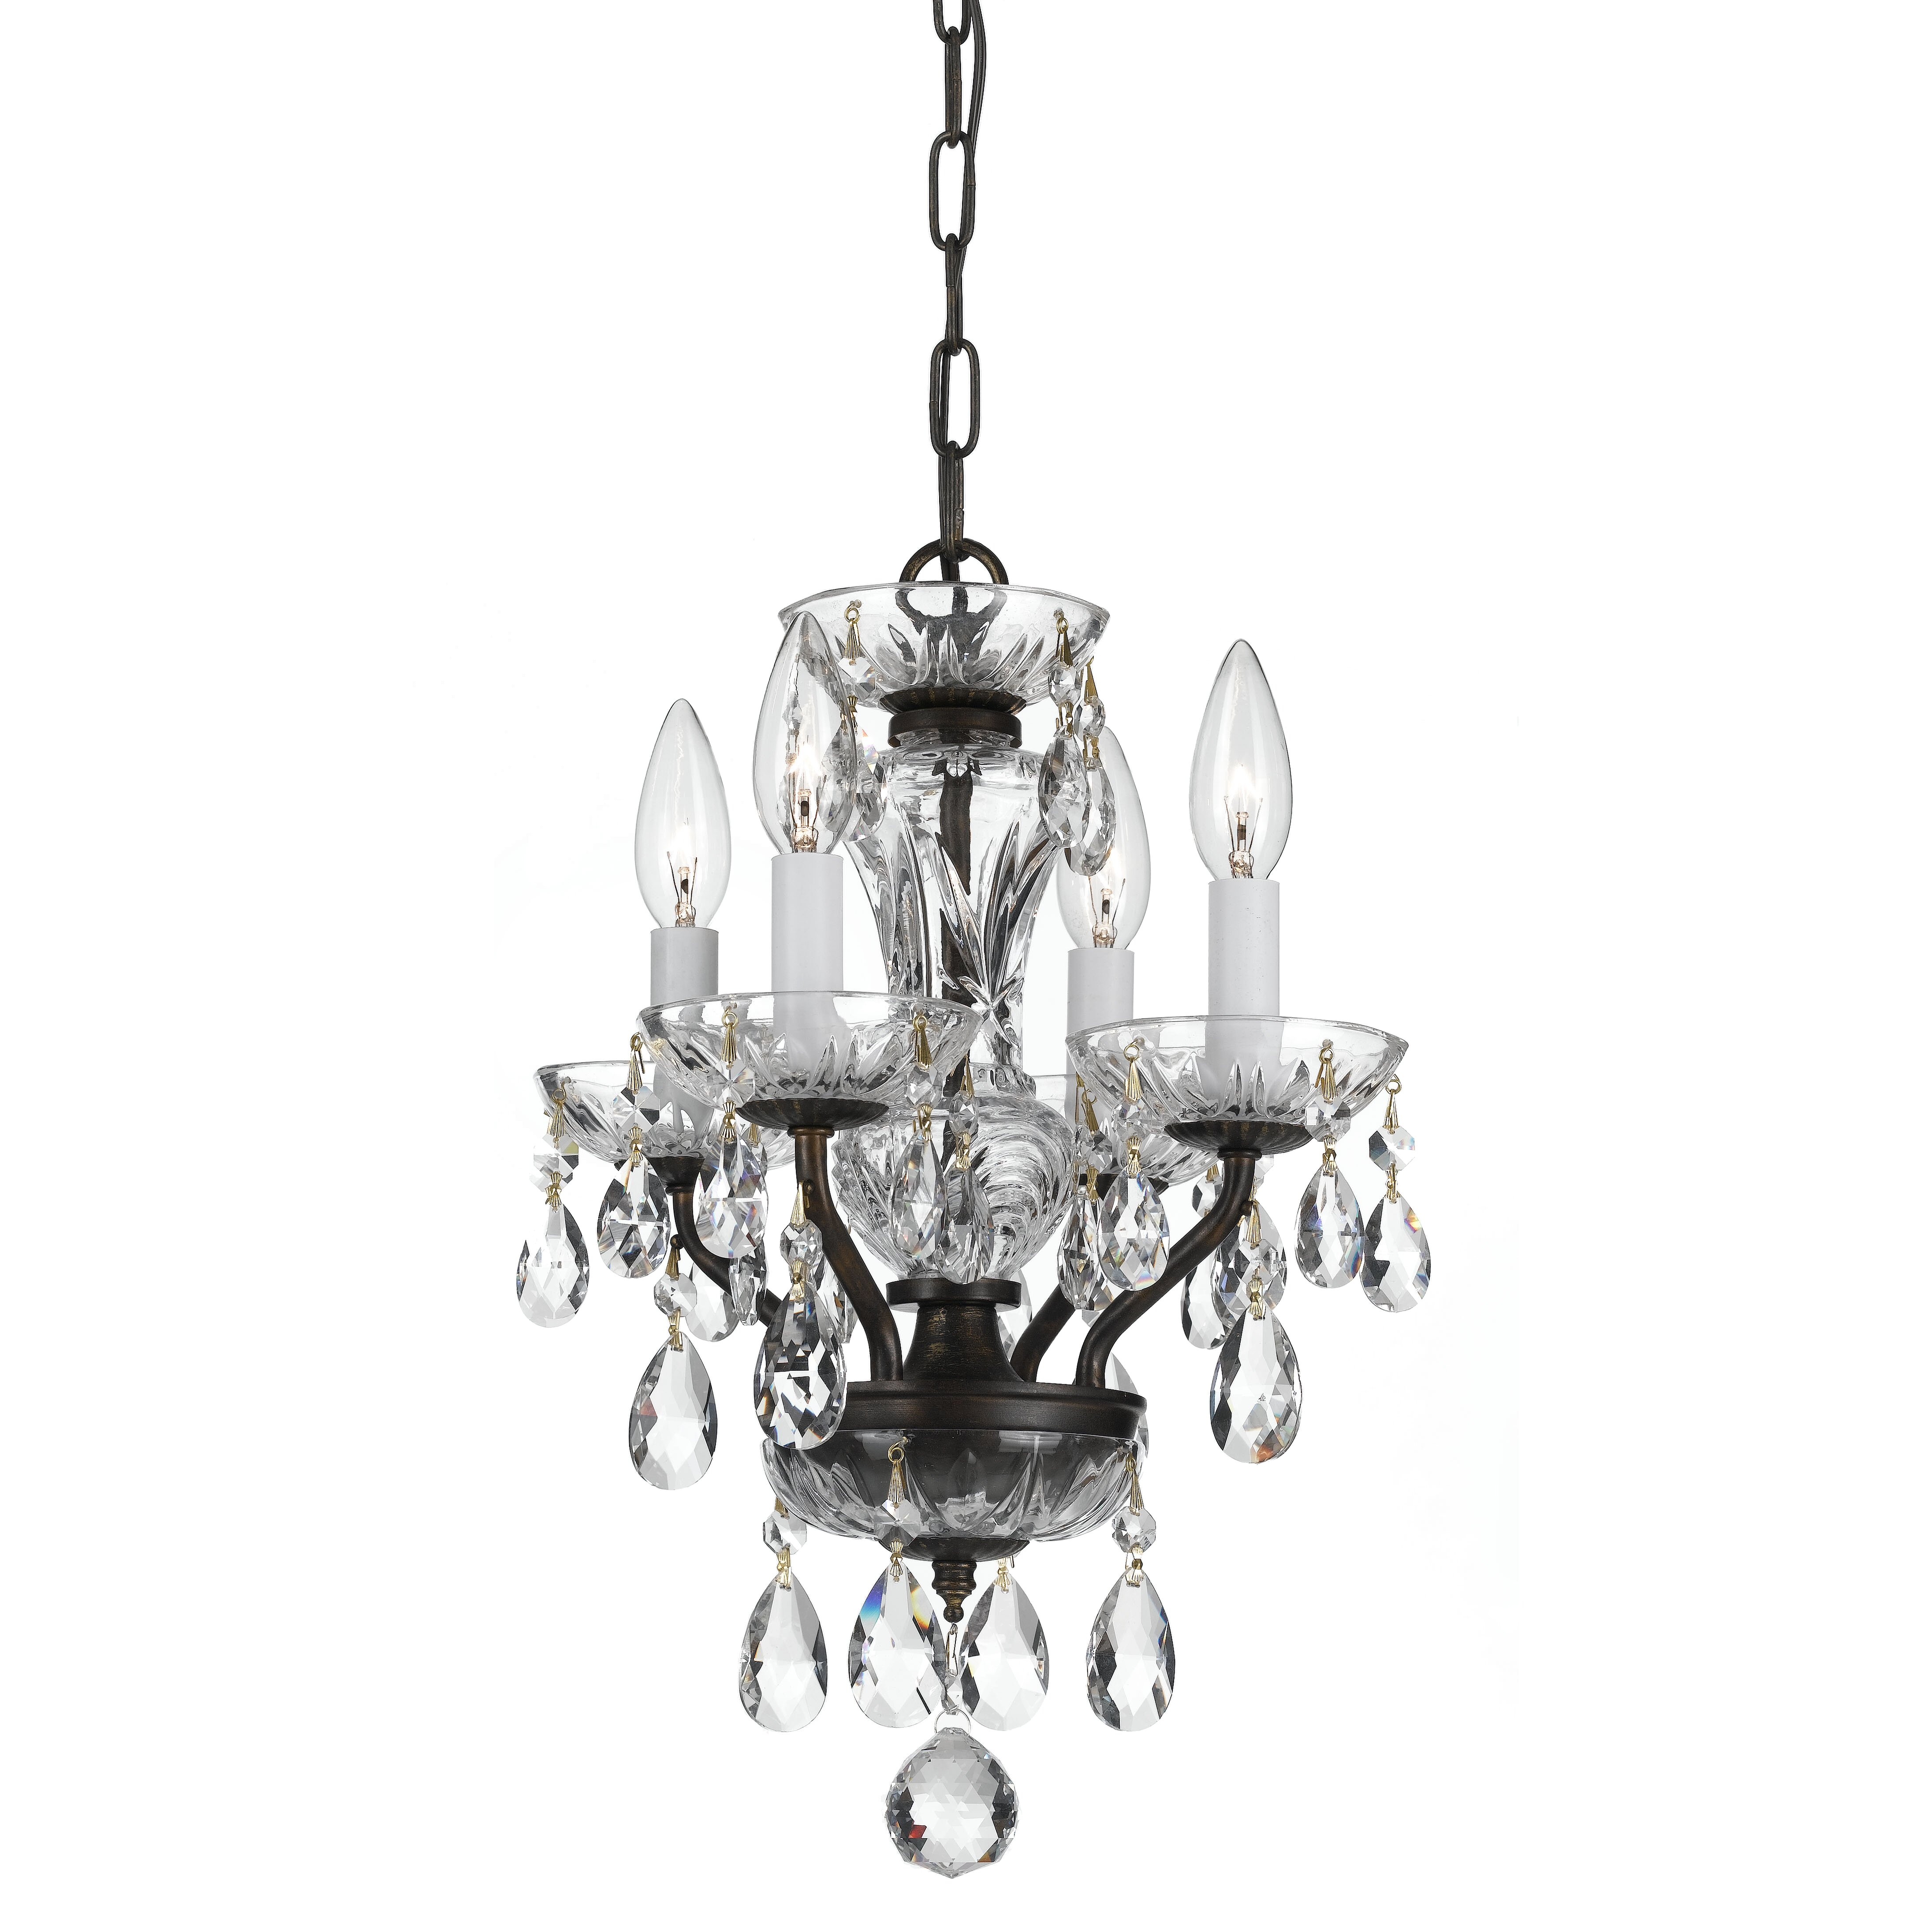 Crystorama traditional crystal 4 light candle chandelier Crystal candle chandelier